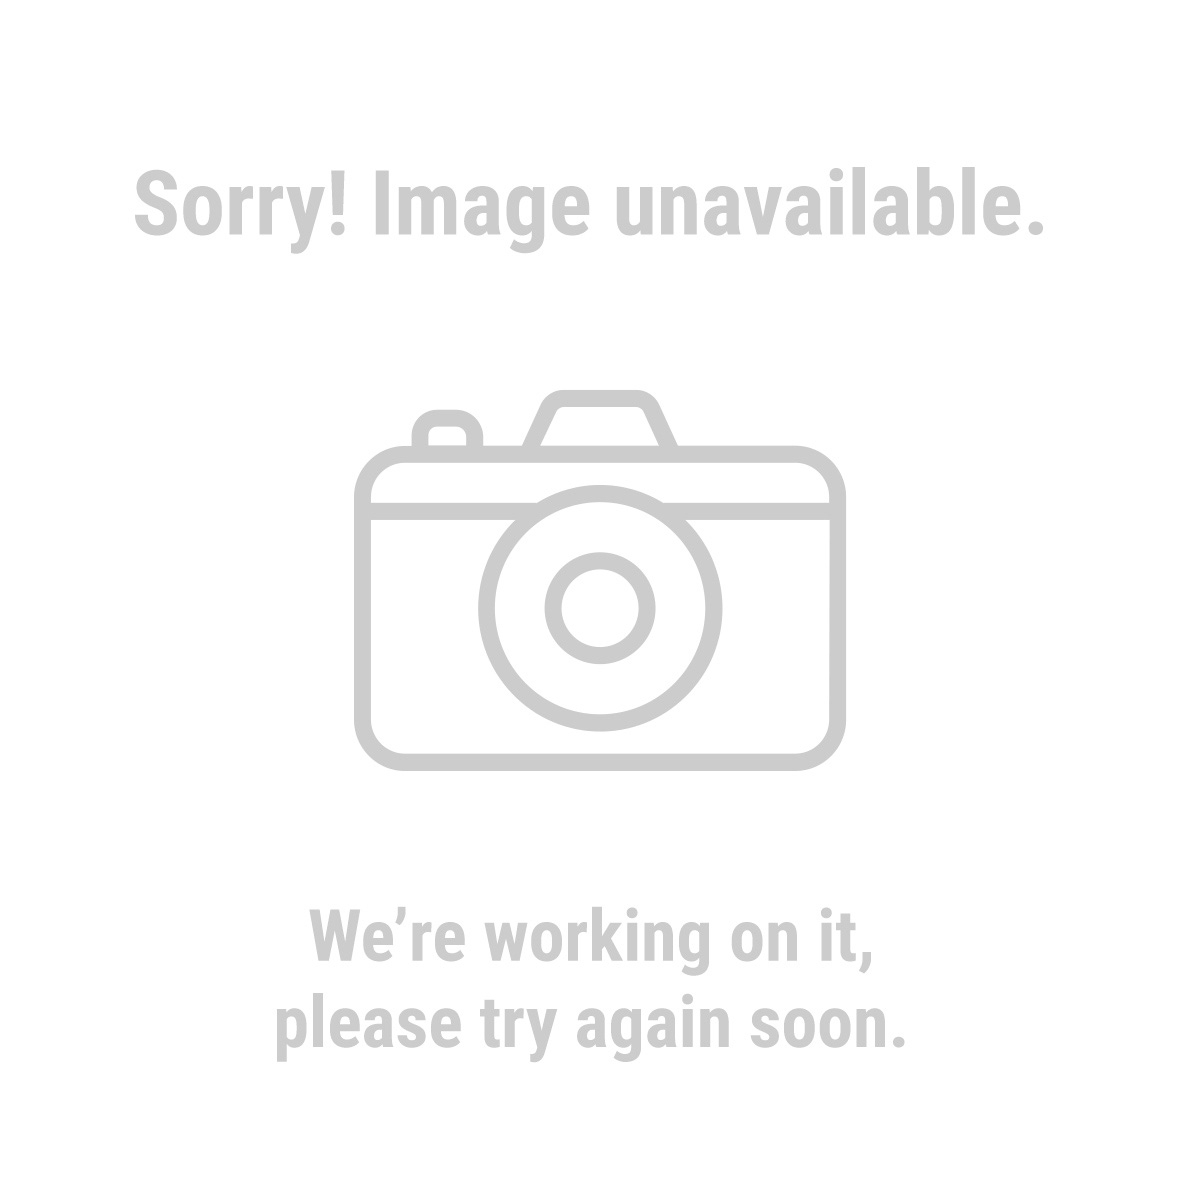 HFT® 41445 100 Ft. x 12 Gauge Outdoor Extension Cord